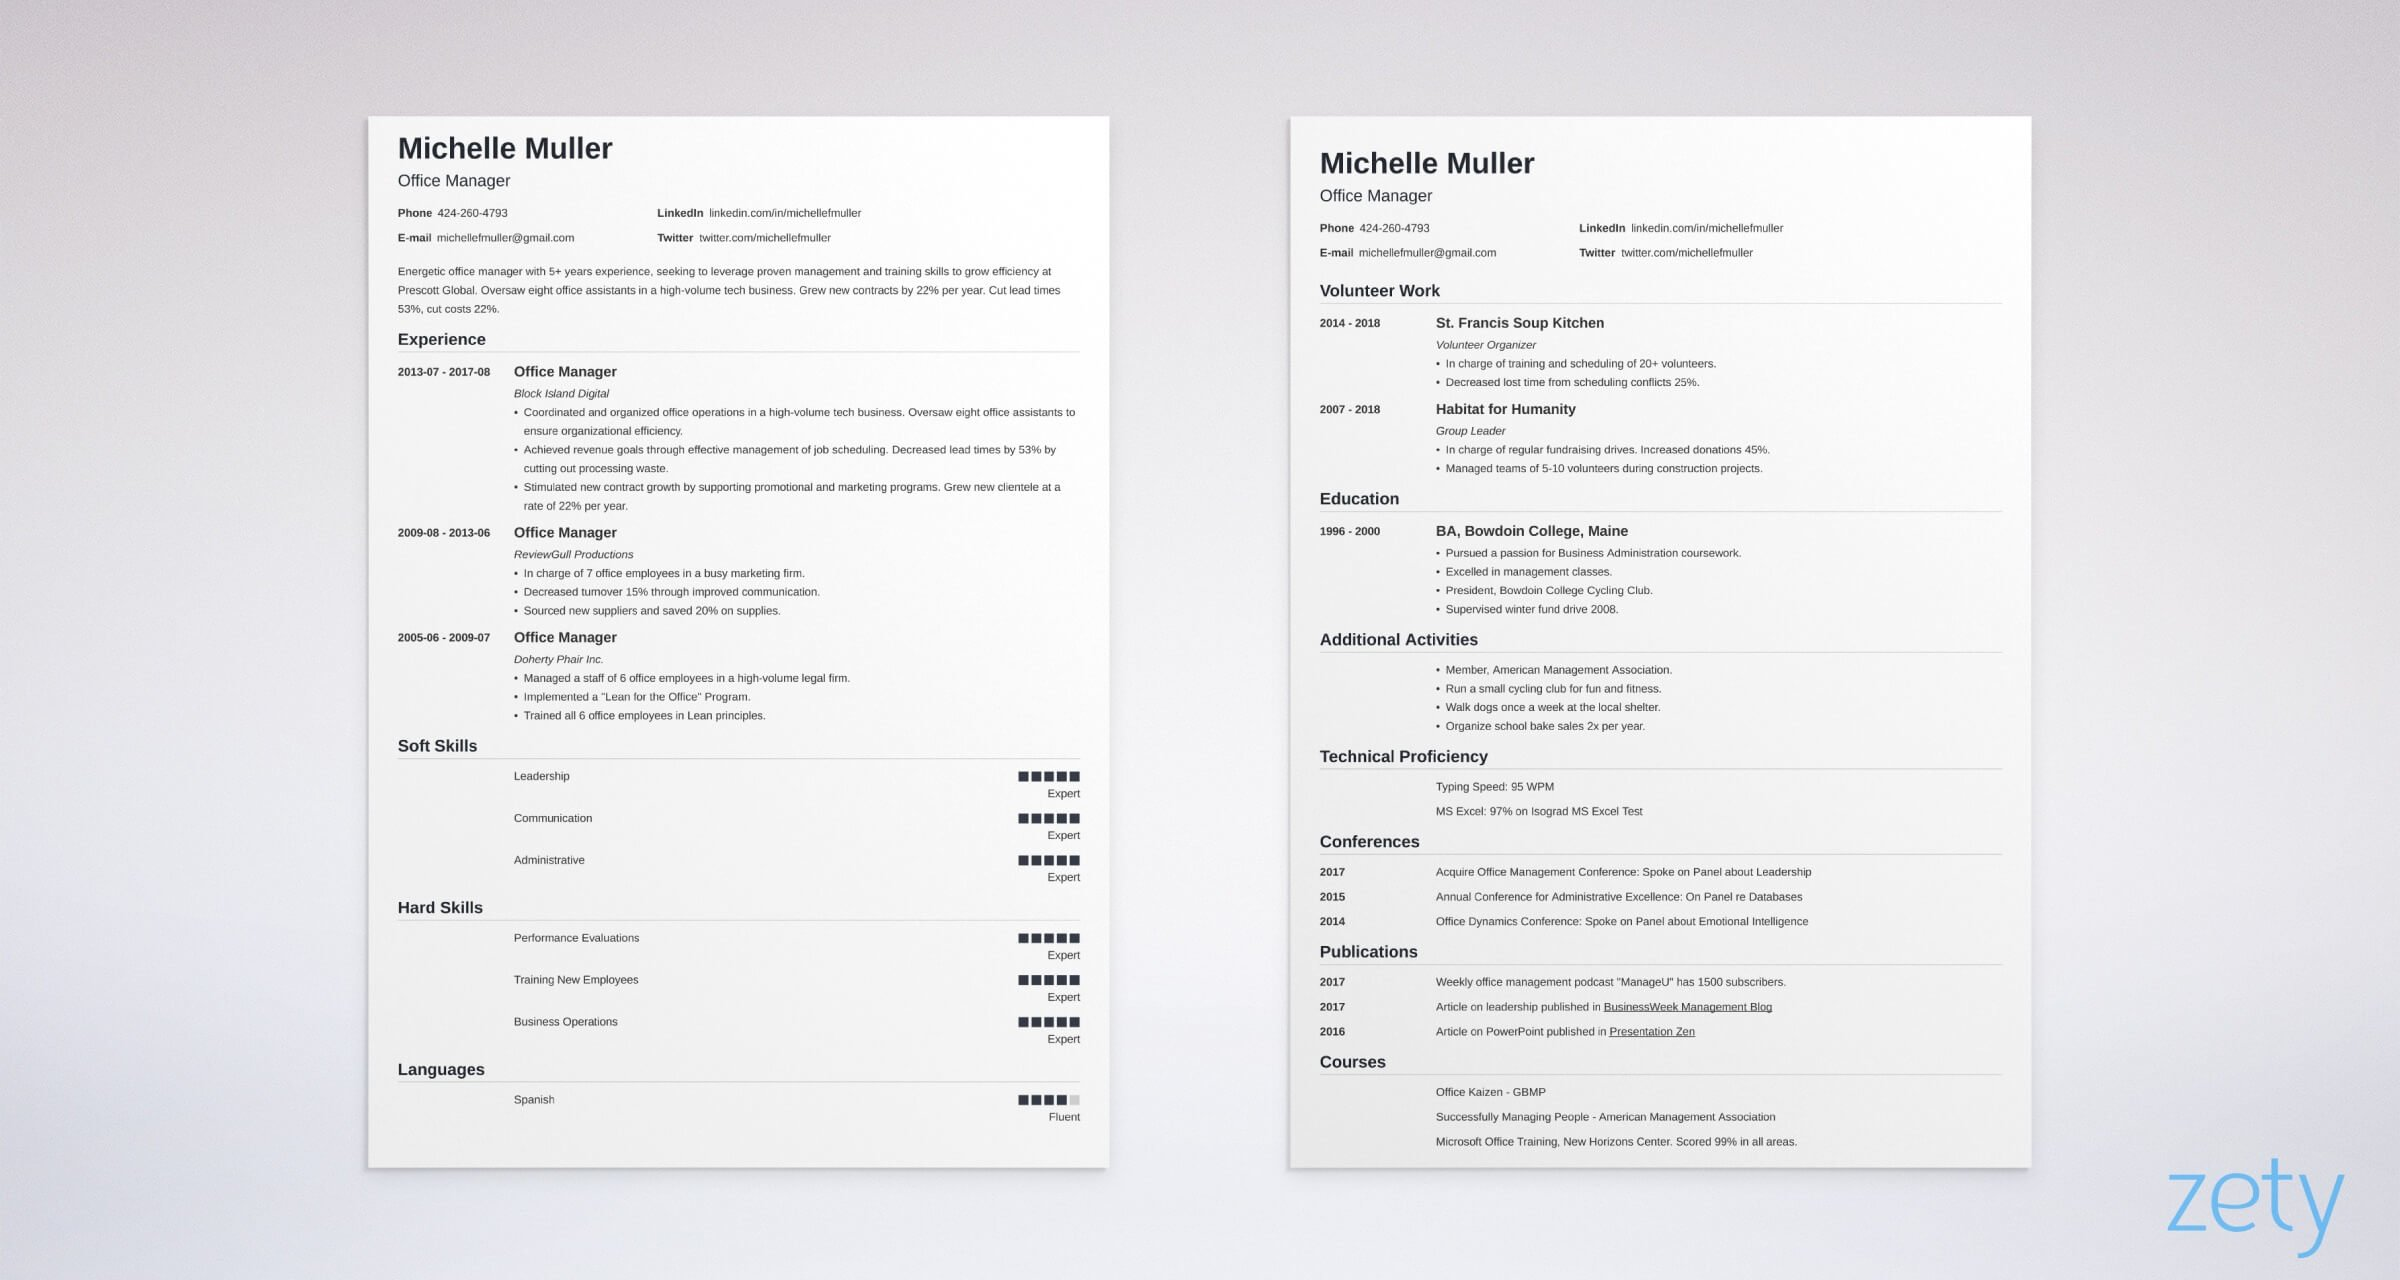 resume it crush your chances format tips best two nanica1 inventory clerk london template Resume Best Two Page Resume Format